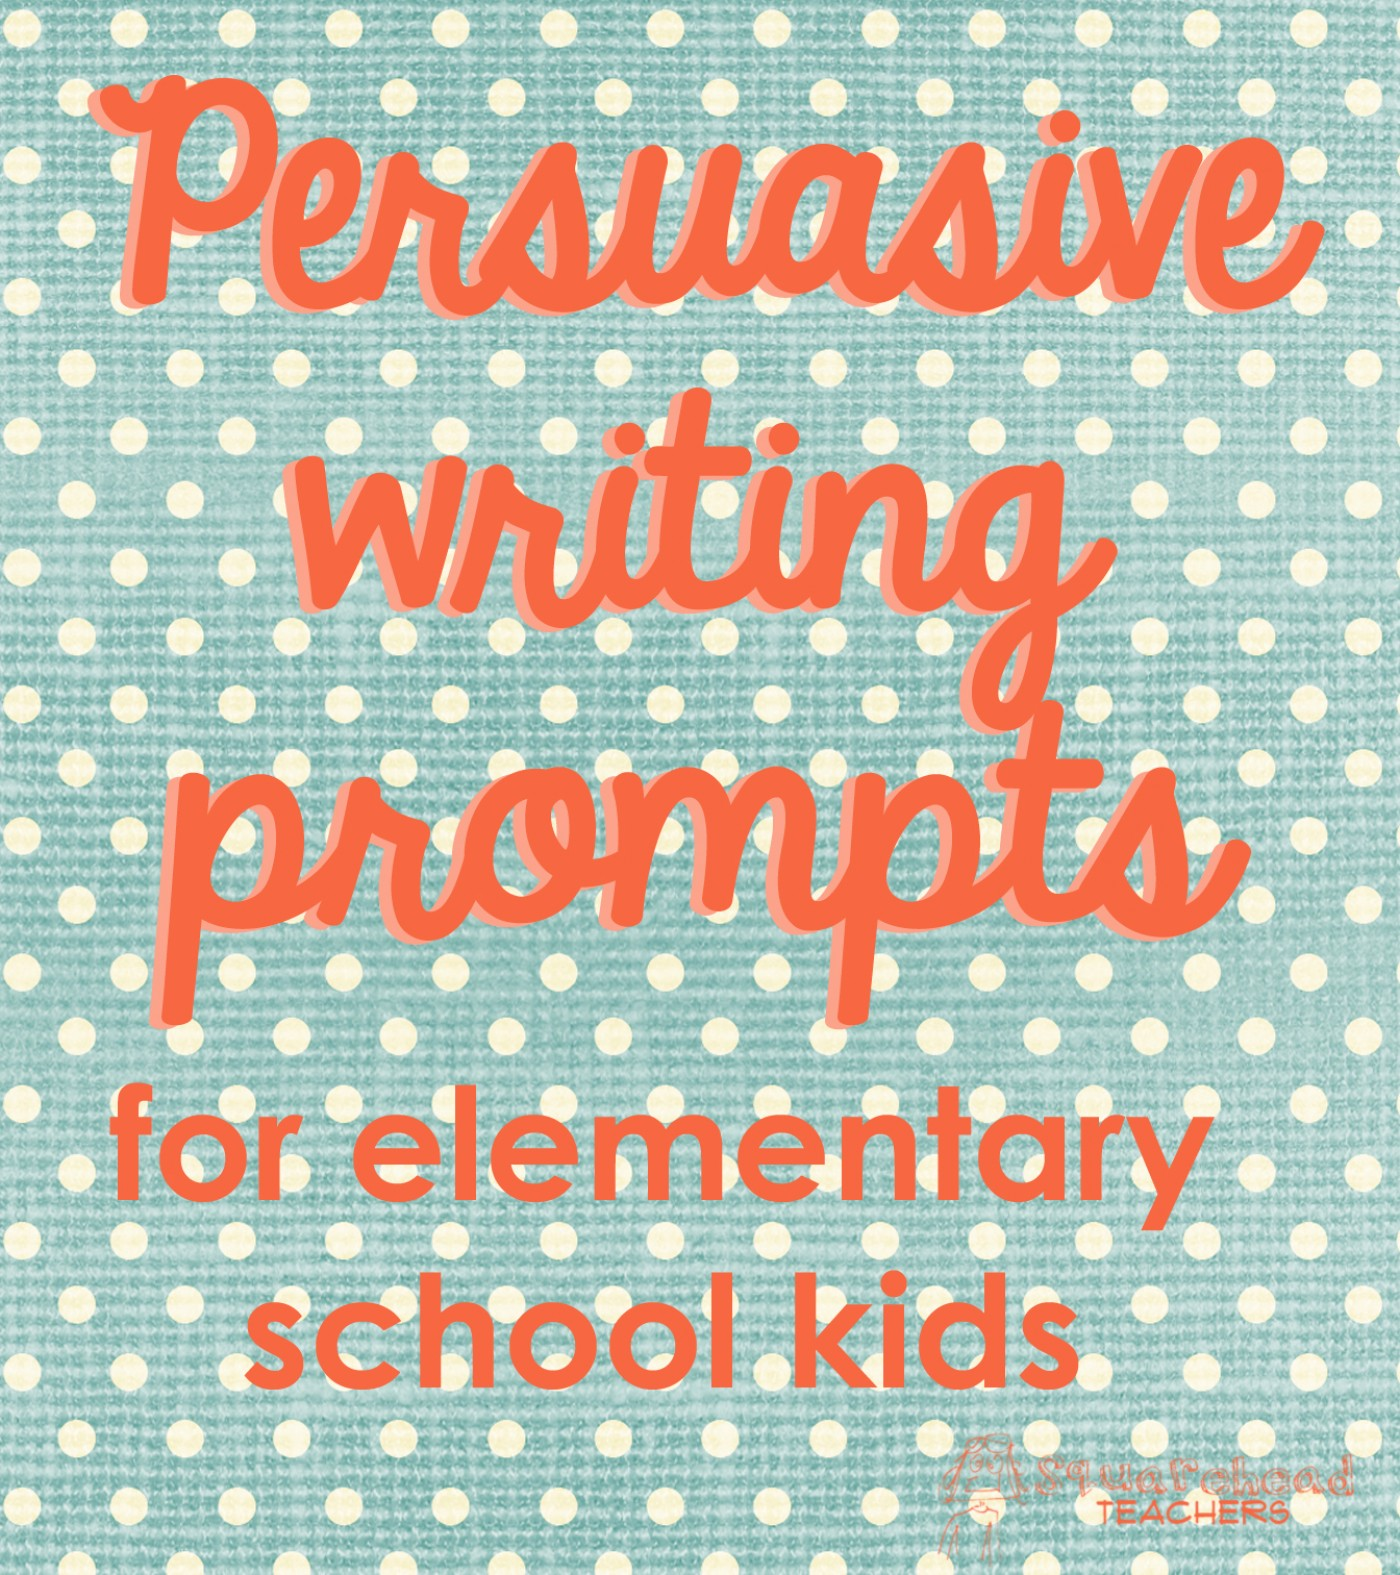 016 Persuasive Writing Prompts For Elementary School Kids Research Paper Topics Incredible Middle High Essay Activities 1400